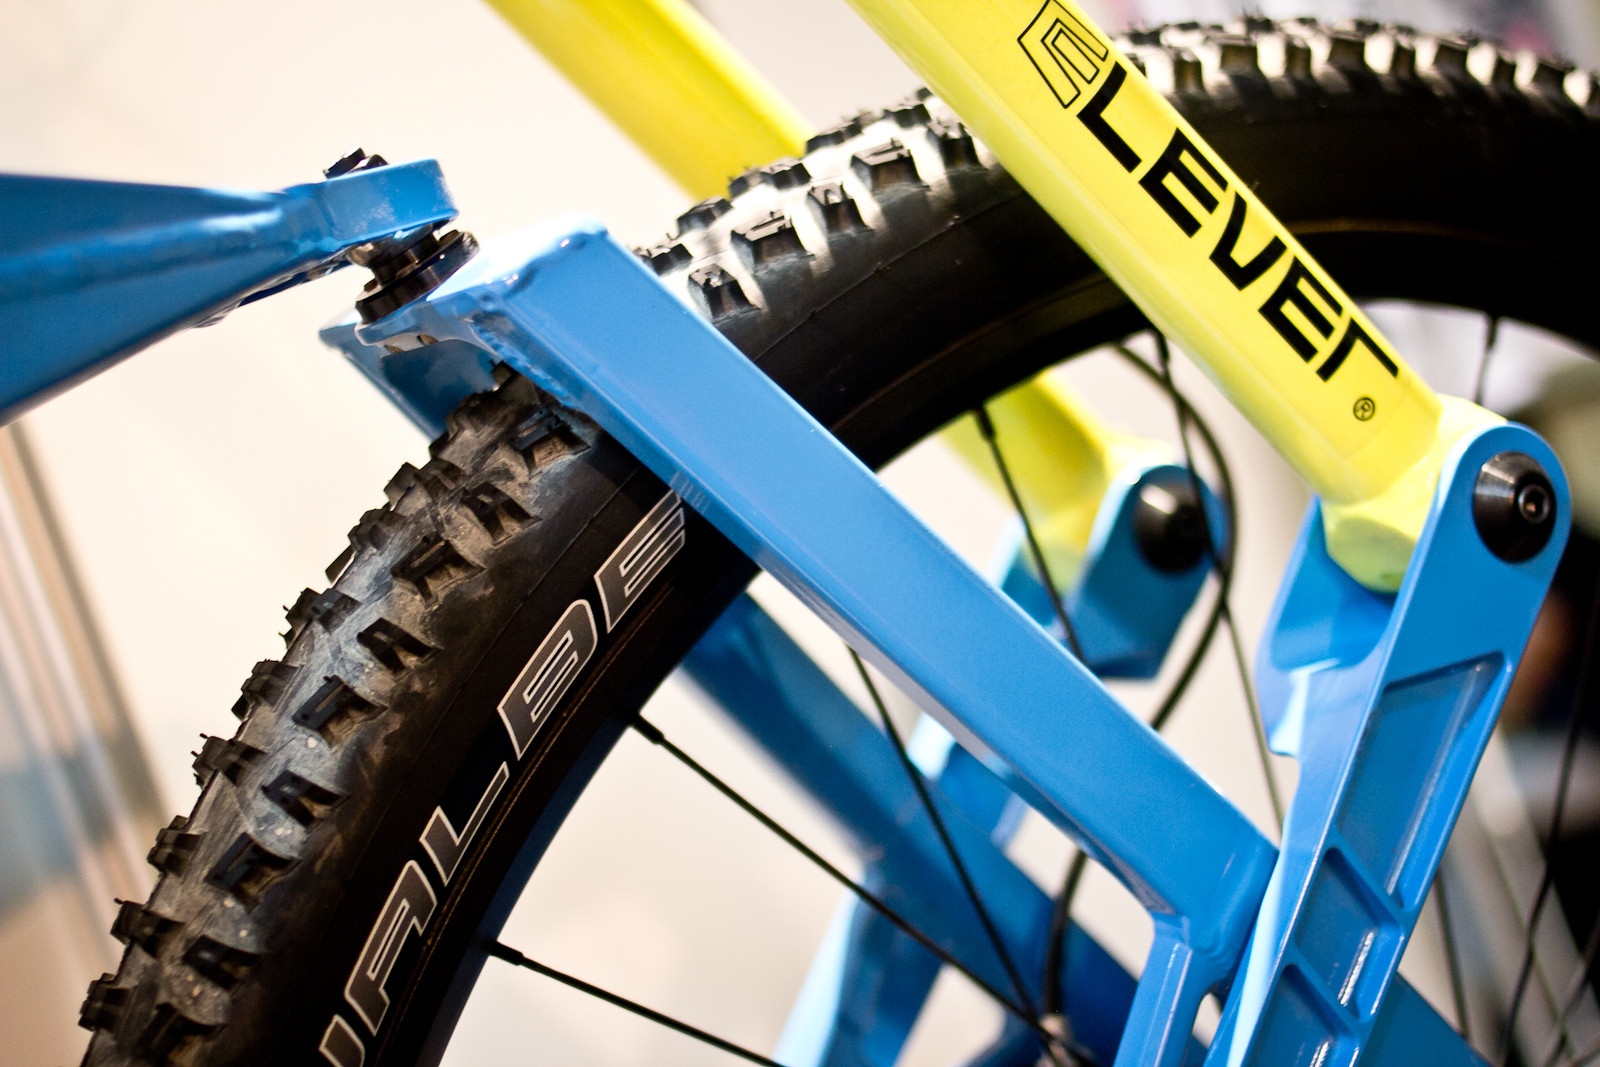 Scurra Hard Enduro Fork and Frame - INTERBIKE: Part 2 - Some of the Latest and Greatest for 2014 - Mountain Biking Pictures - Vital MTB